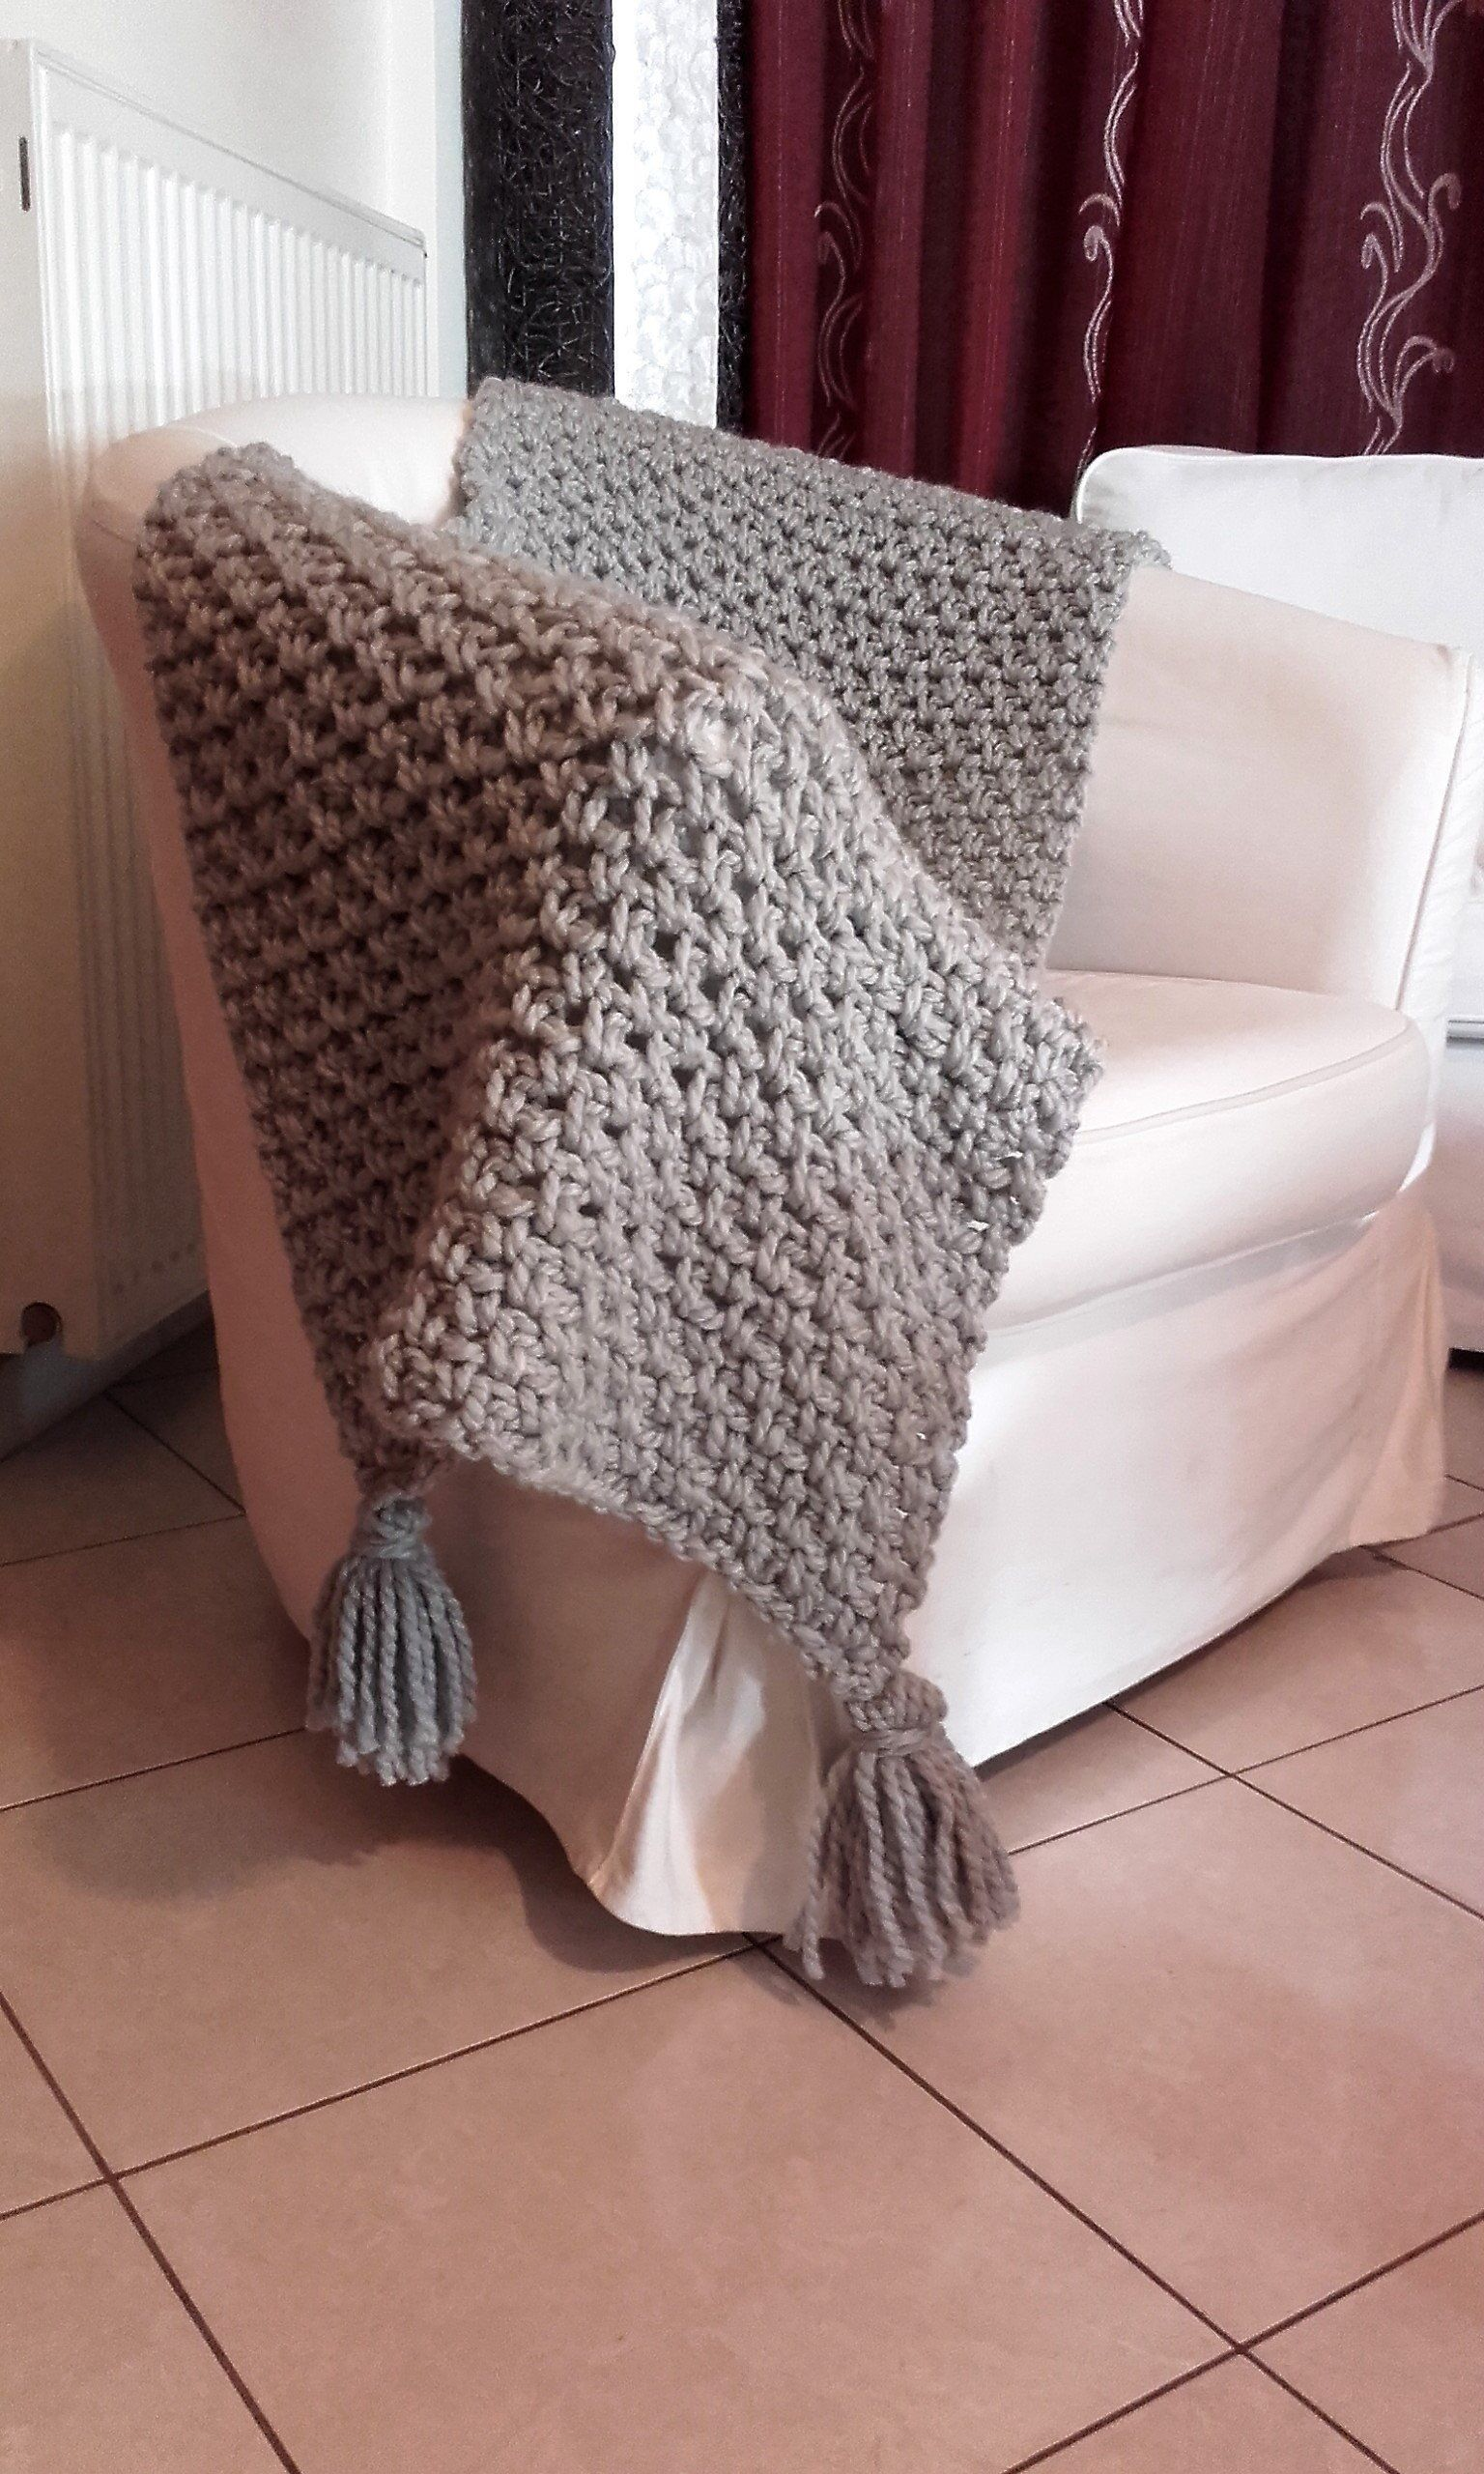 Chunky Knit Throw Blanket Sofa Throw With Tassels Boho Bedding Couch Bed Cover Wool Crochet Throw H Knitted Throws Boho Throw Blanket Chunky Knit Throw Blanket